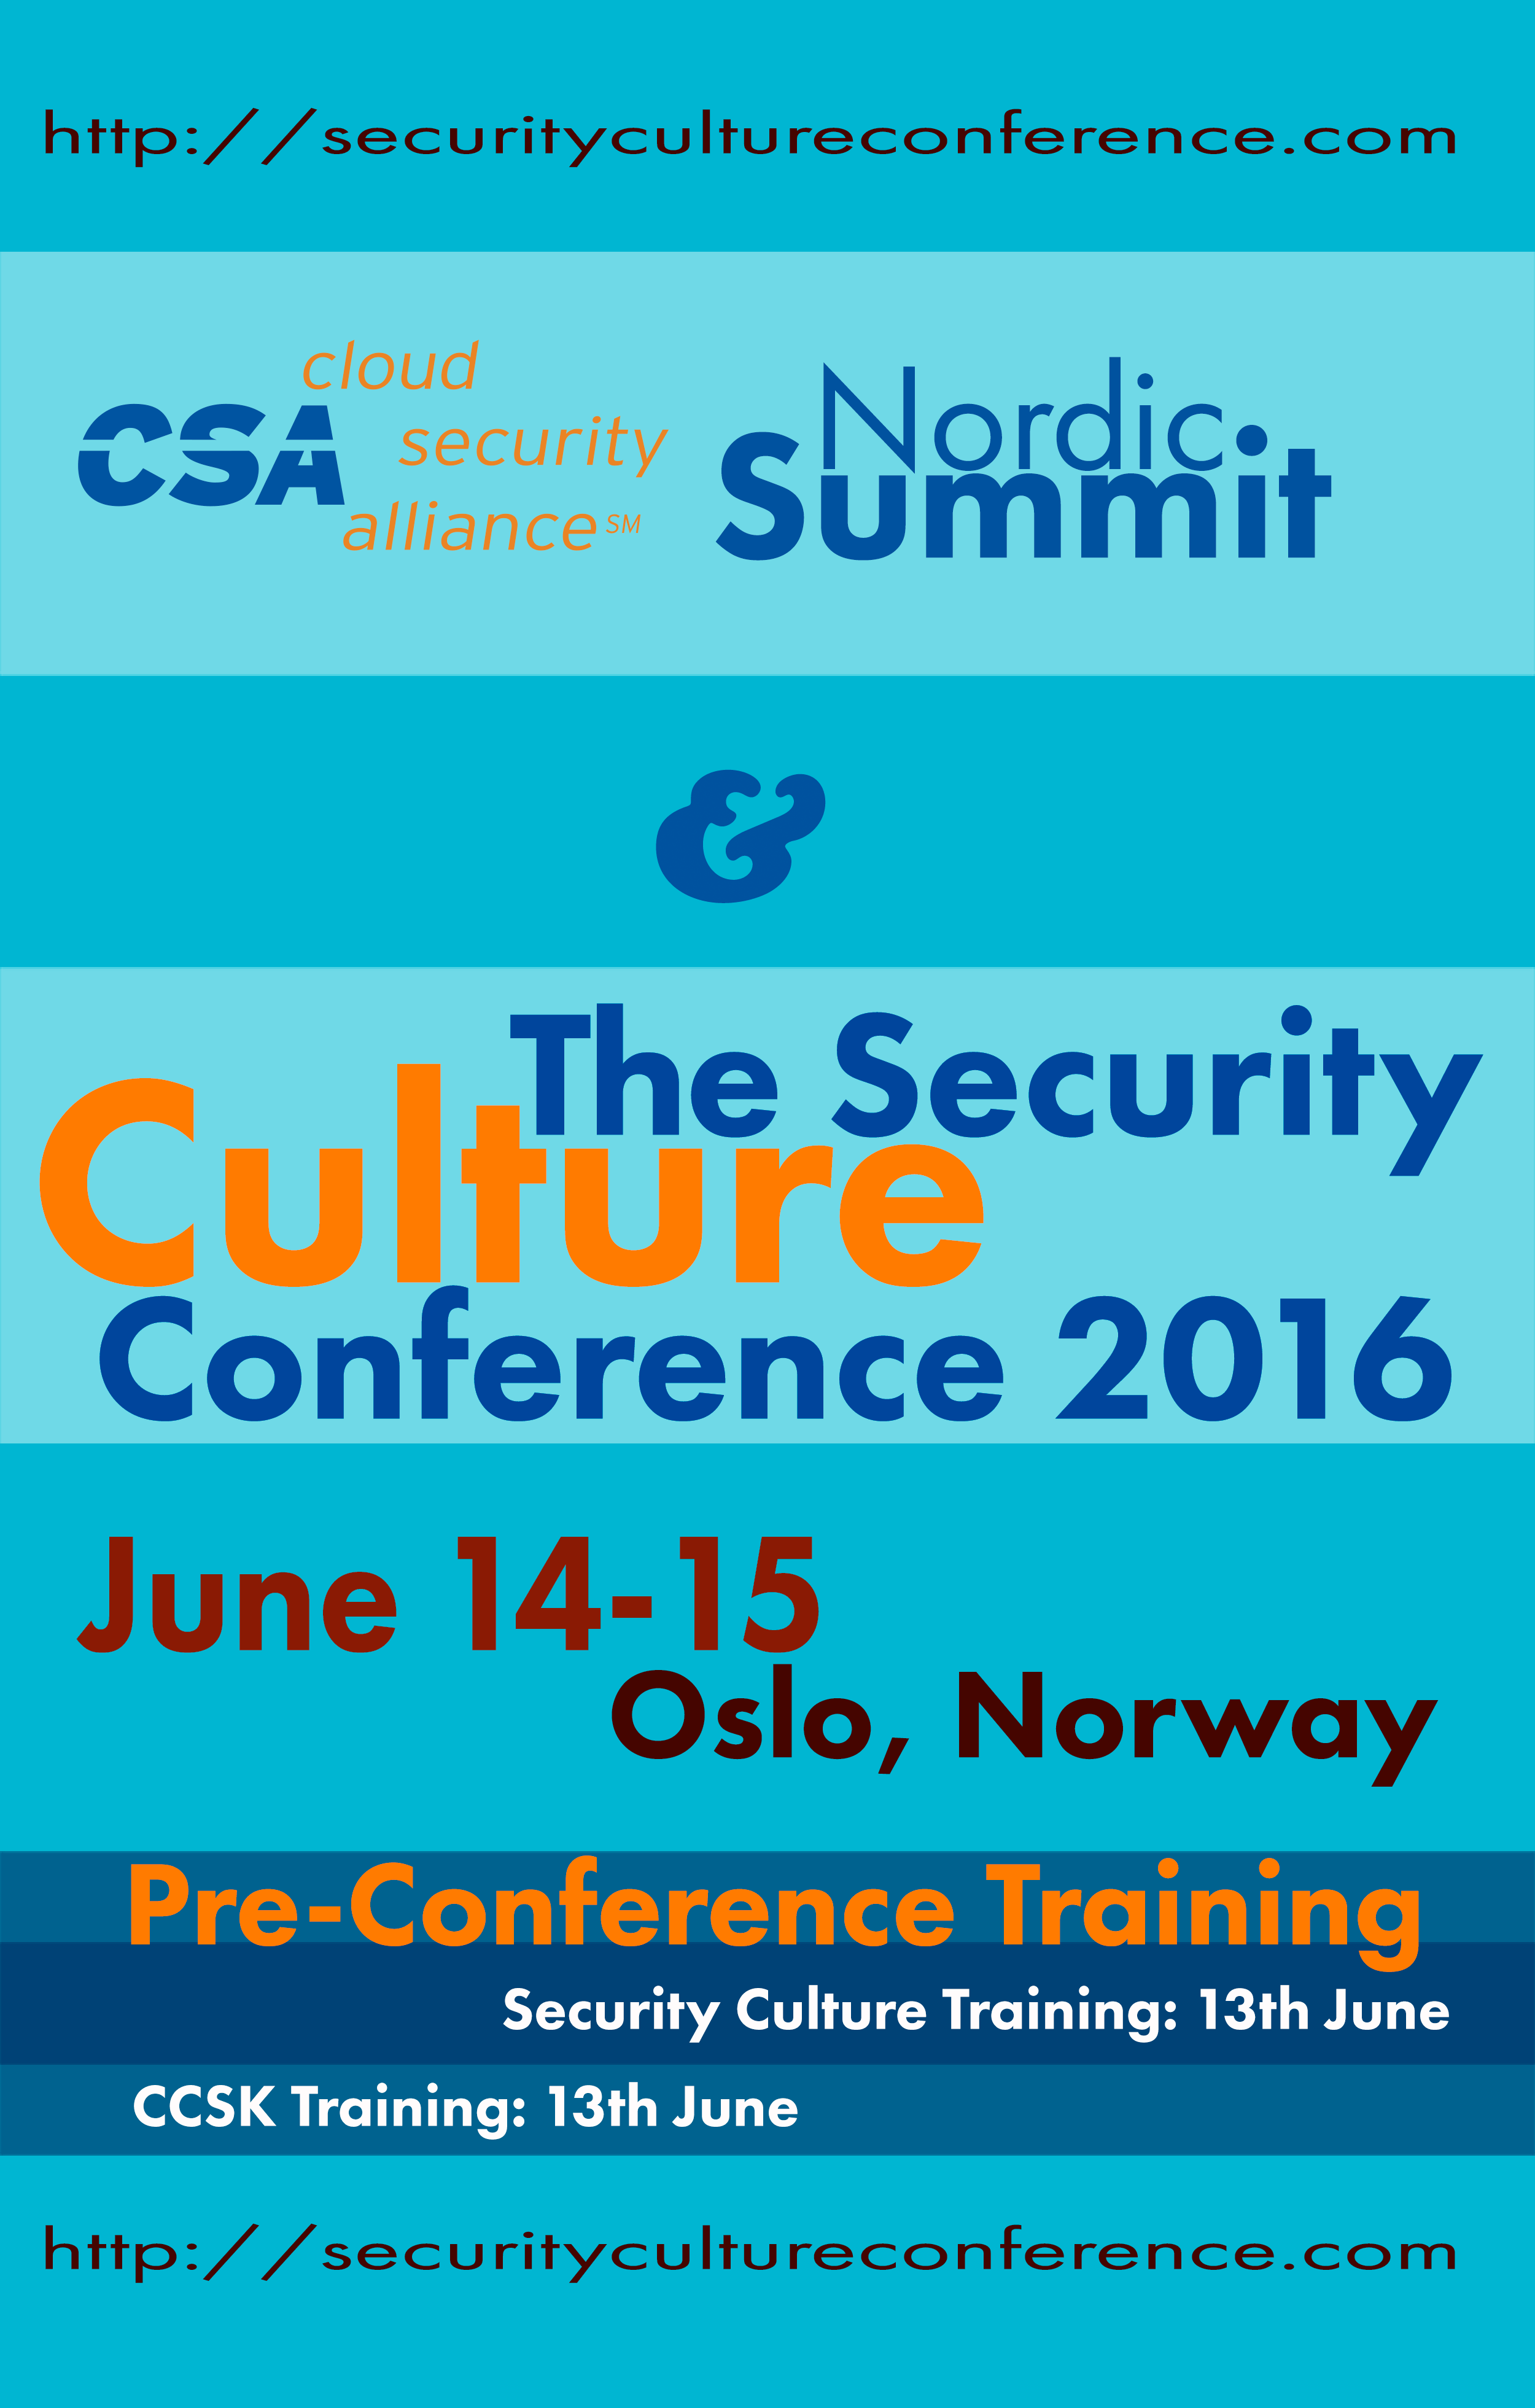 The CSA Nordic Summit and Security Culture Conference 2016